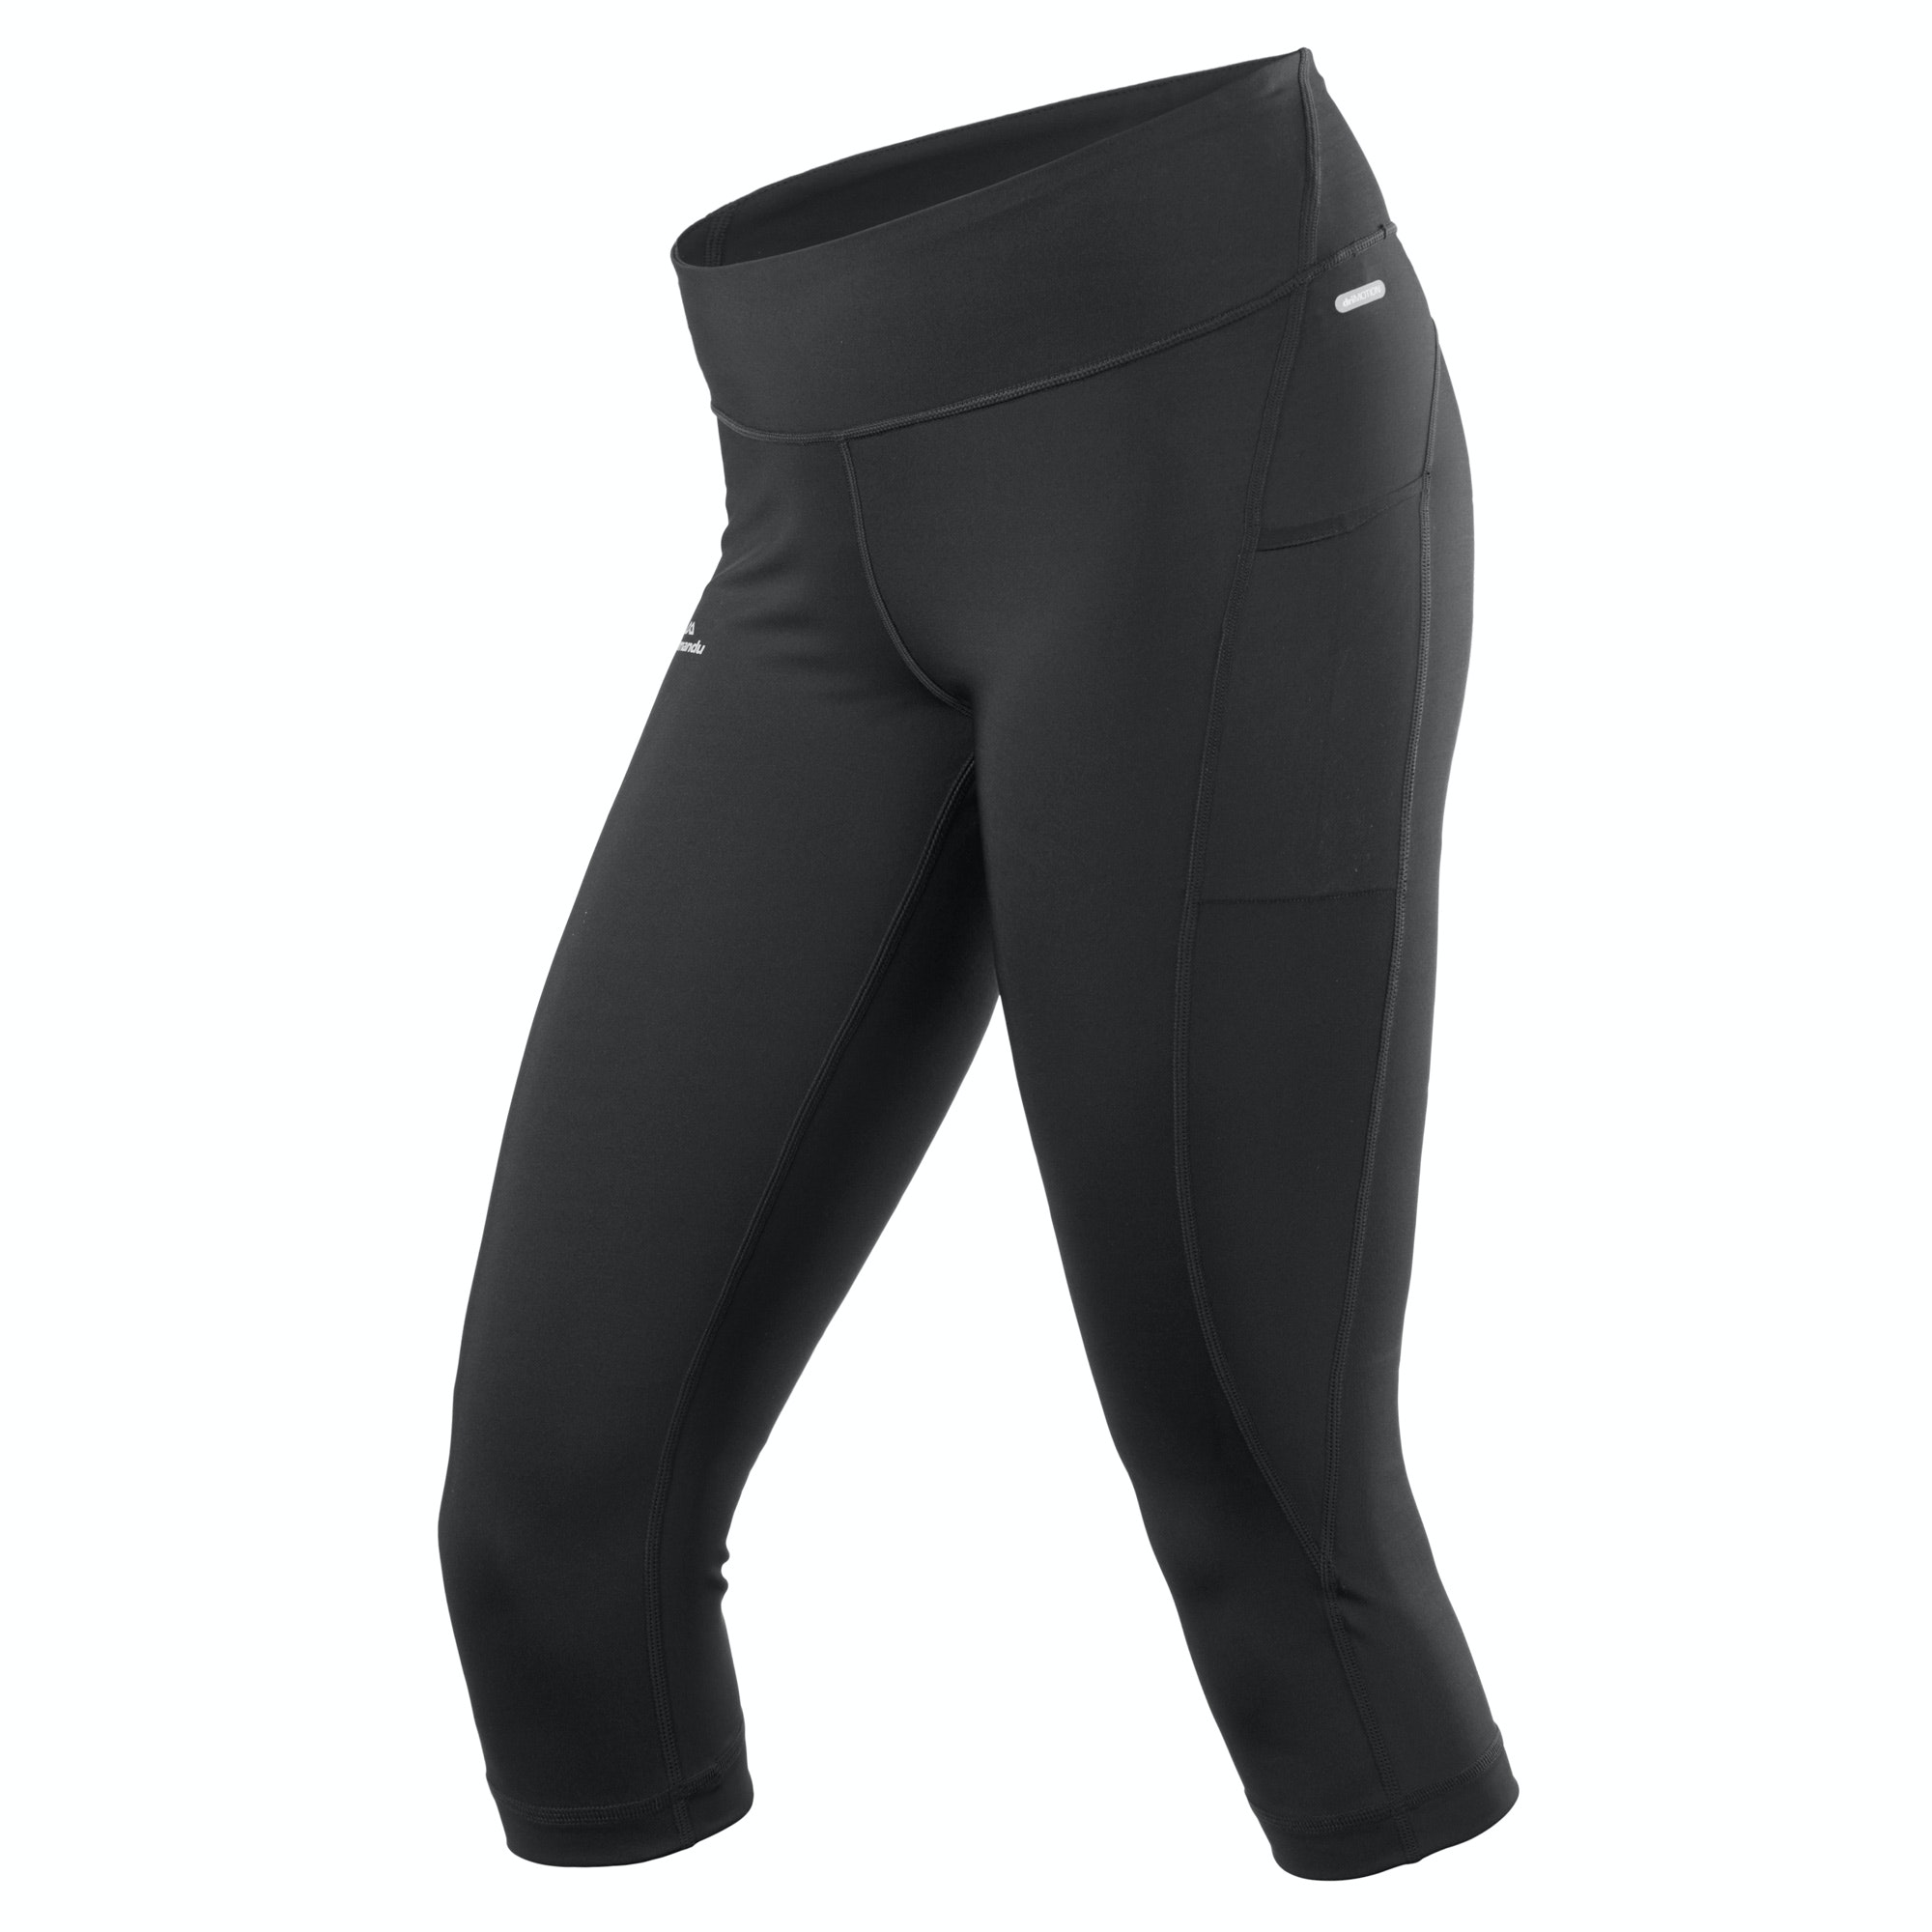 NEW-Kathmandu-Zeolite-Women-039-s-Active-Performance-3-4-Leggings thumbnail 9